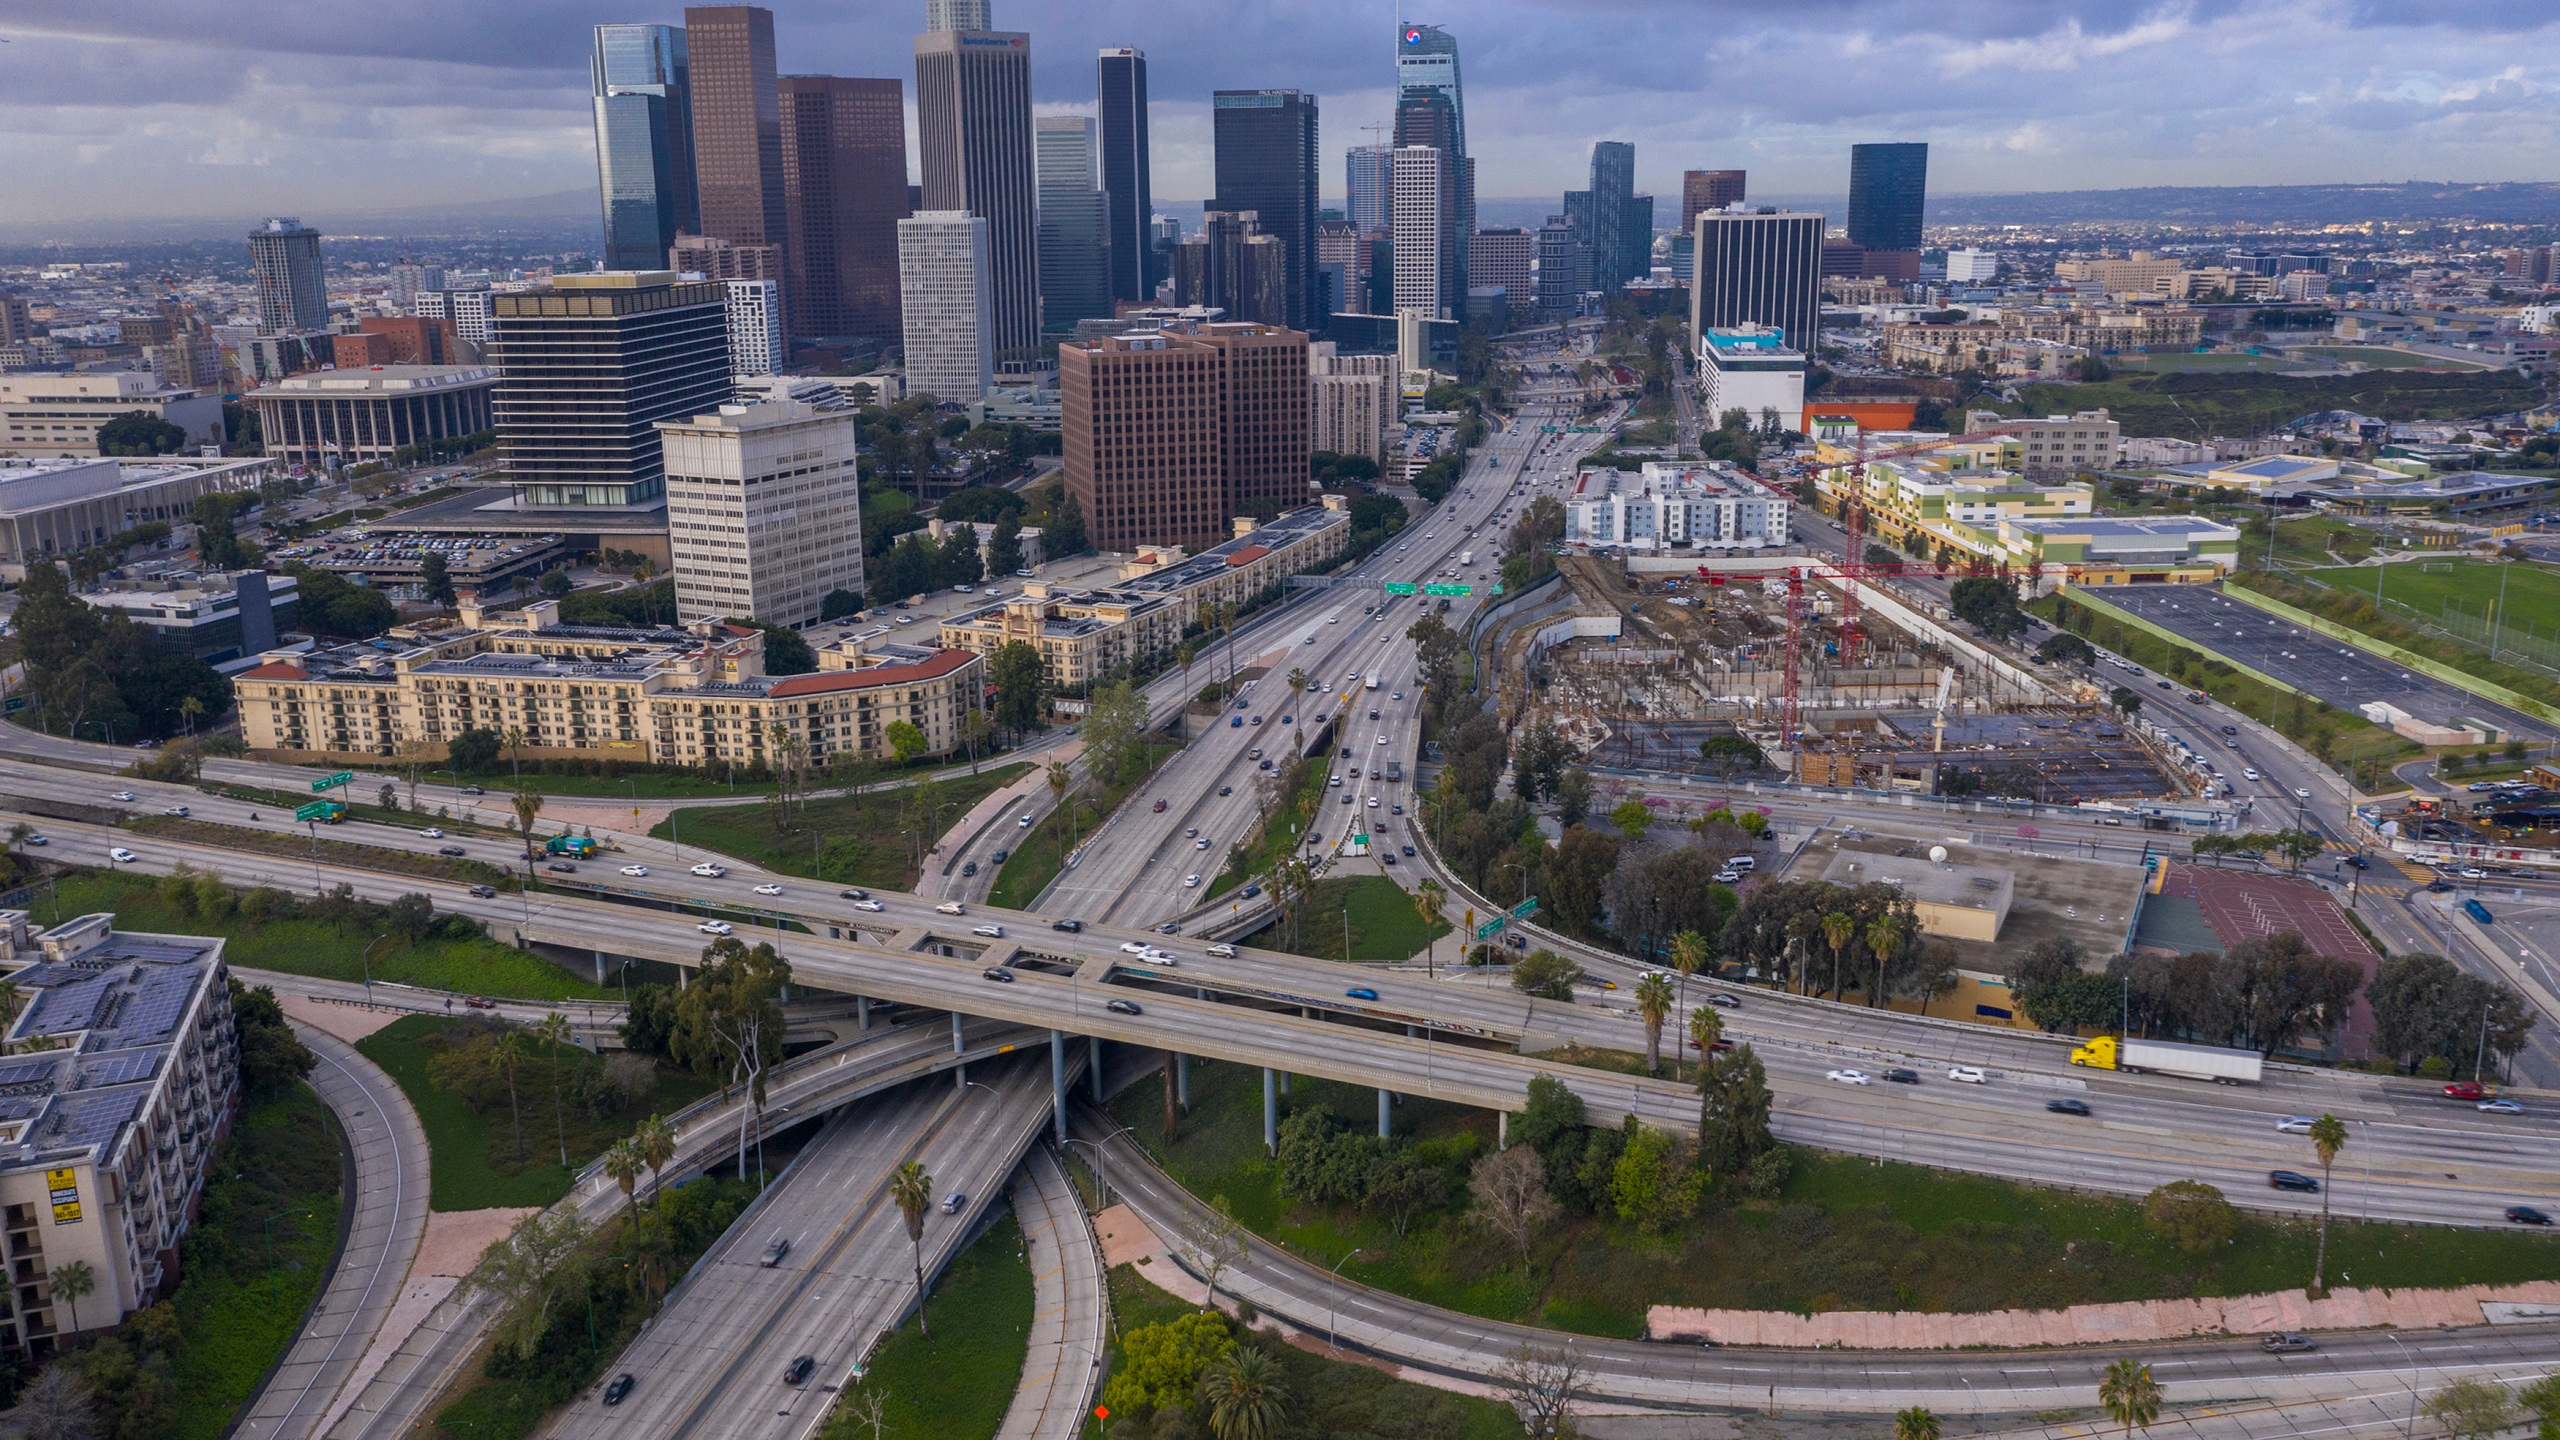 Freeway traffic flows lighter than usual on the 110 and 101 freeways before the new restrictions went into effect at midnight as the coronavirus pandemic spreads on March 19, 2020 in Los Angeles. (David McNew/Getty Images)